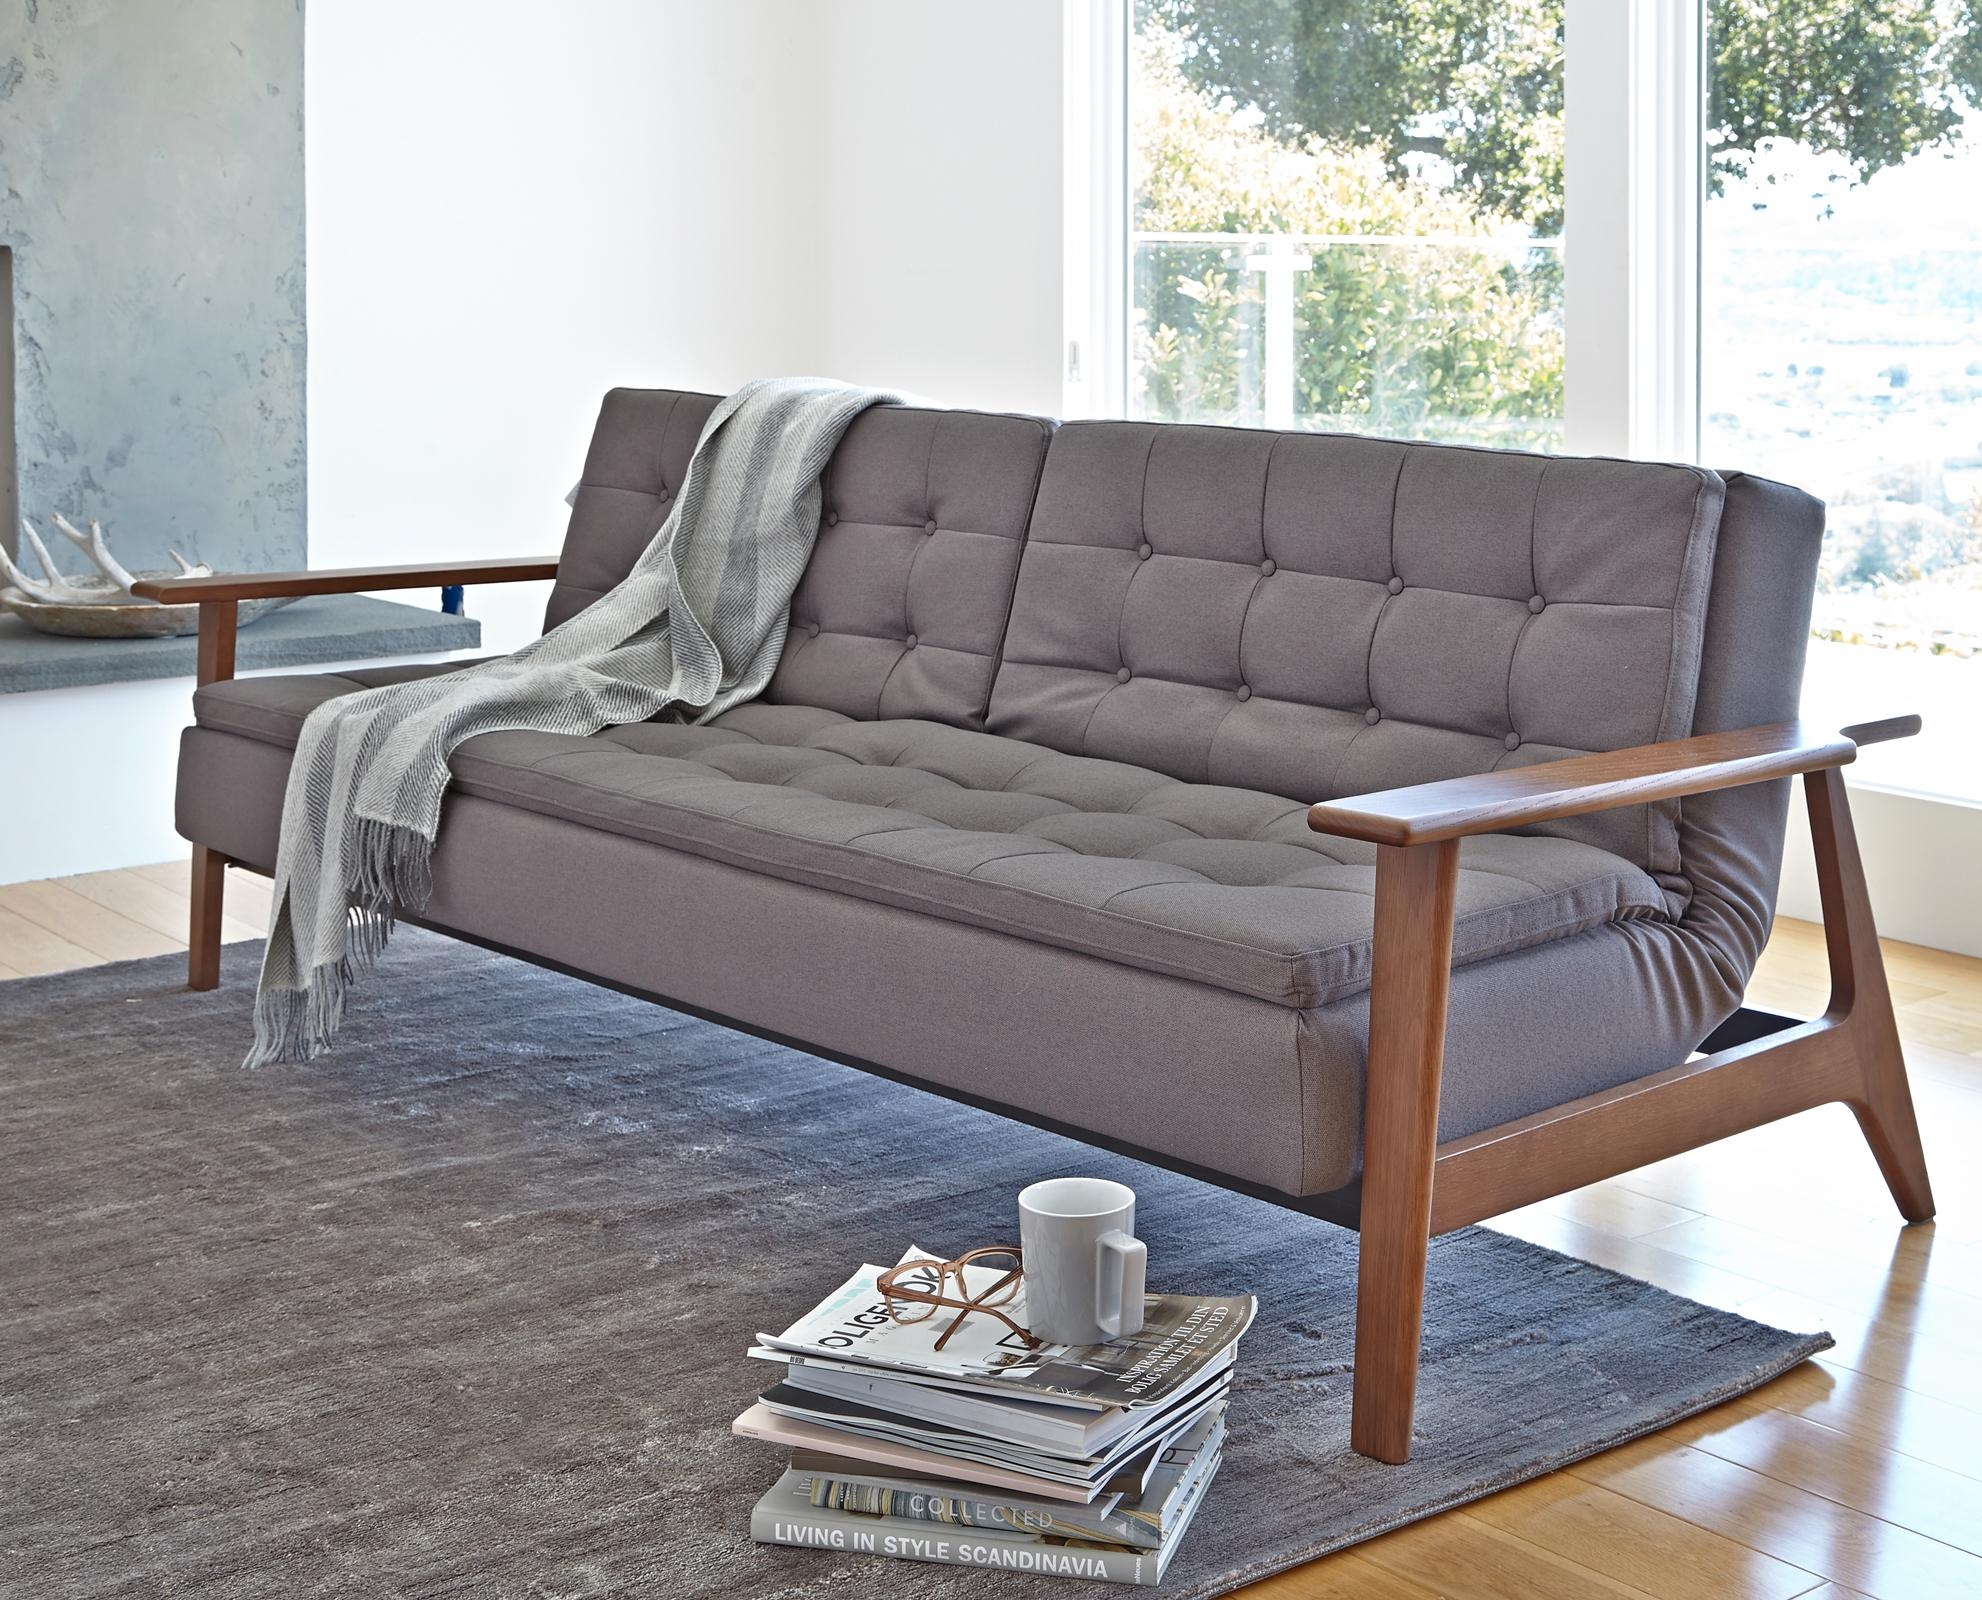 Chair Furniture Comfortable Convertible Sofa Bed Collections Black Regarding Convertible Sofa Chair Bed (View 8 of 20)